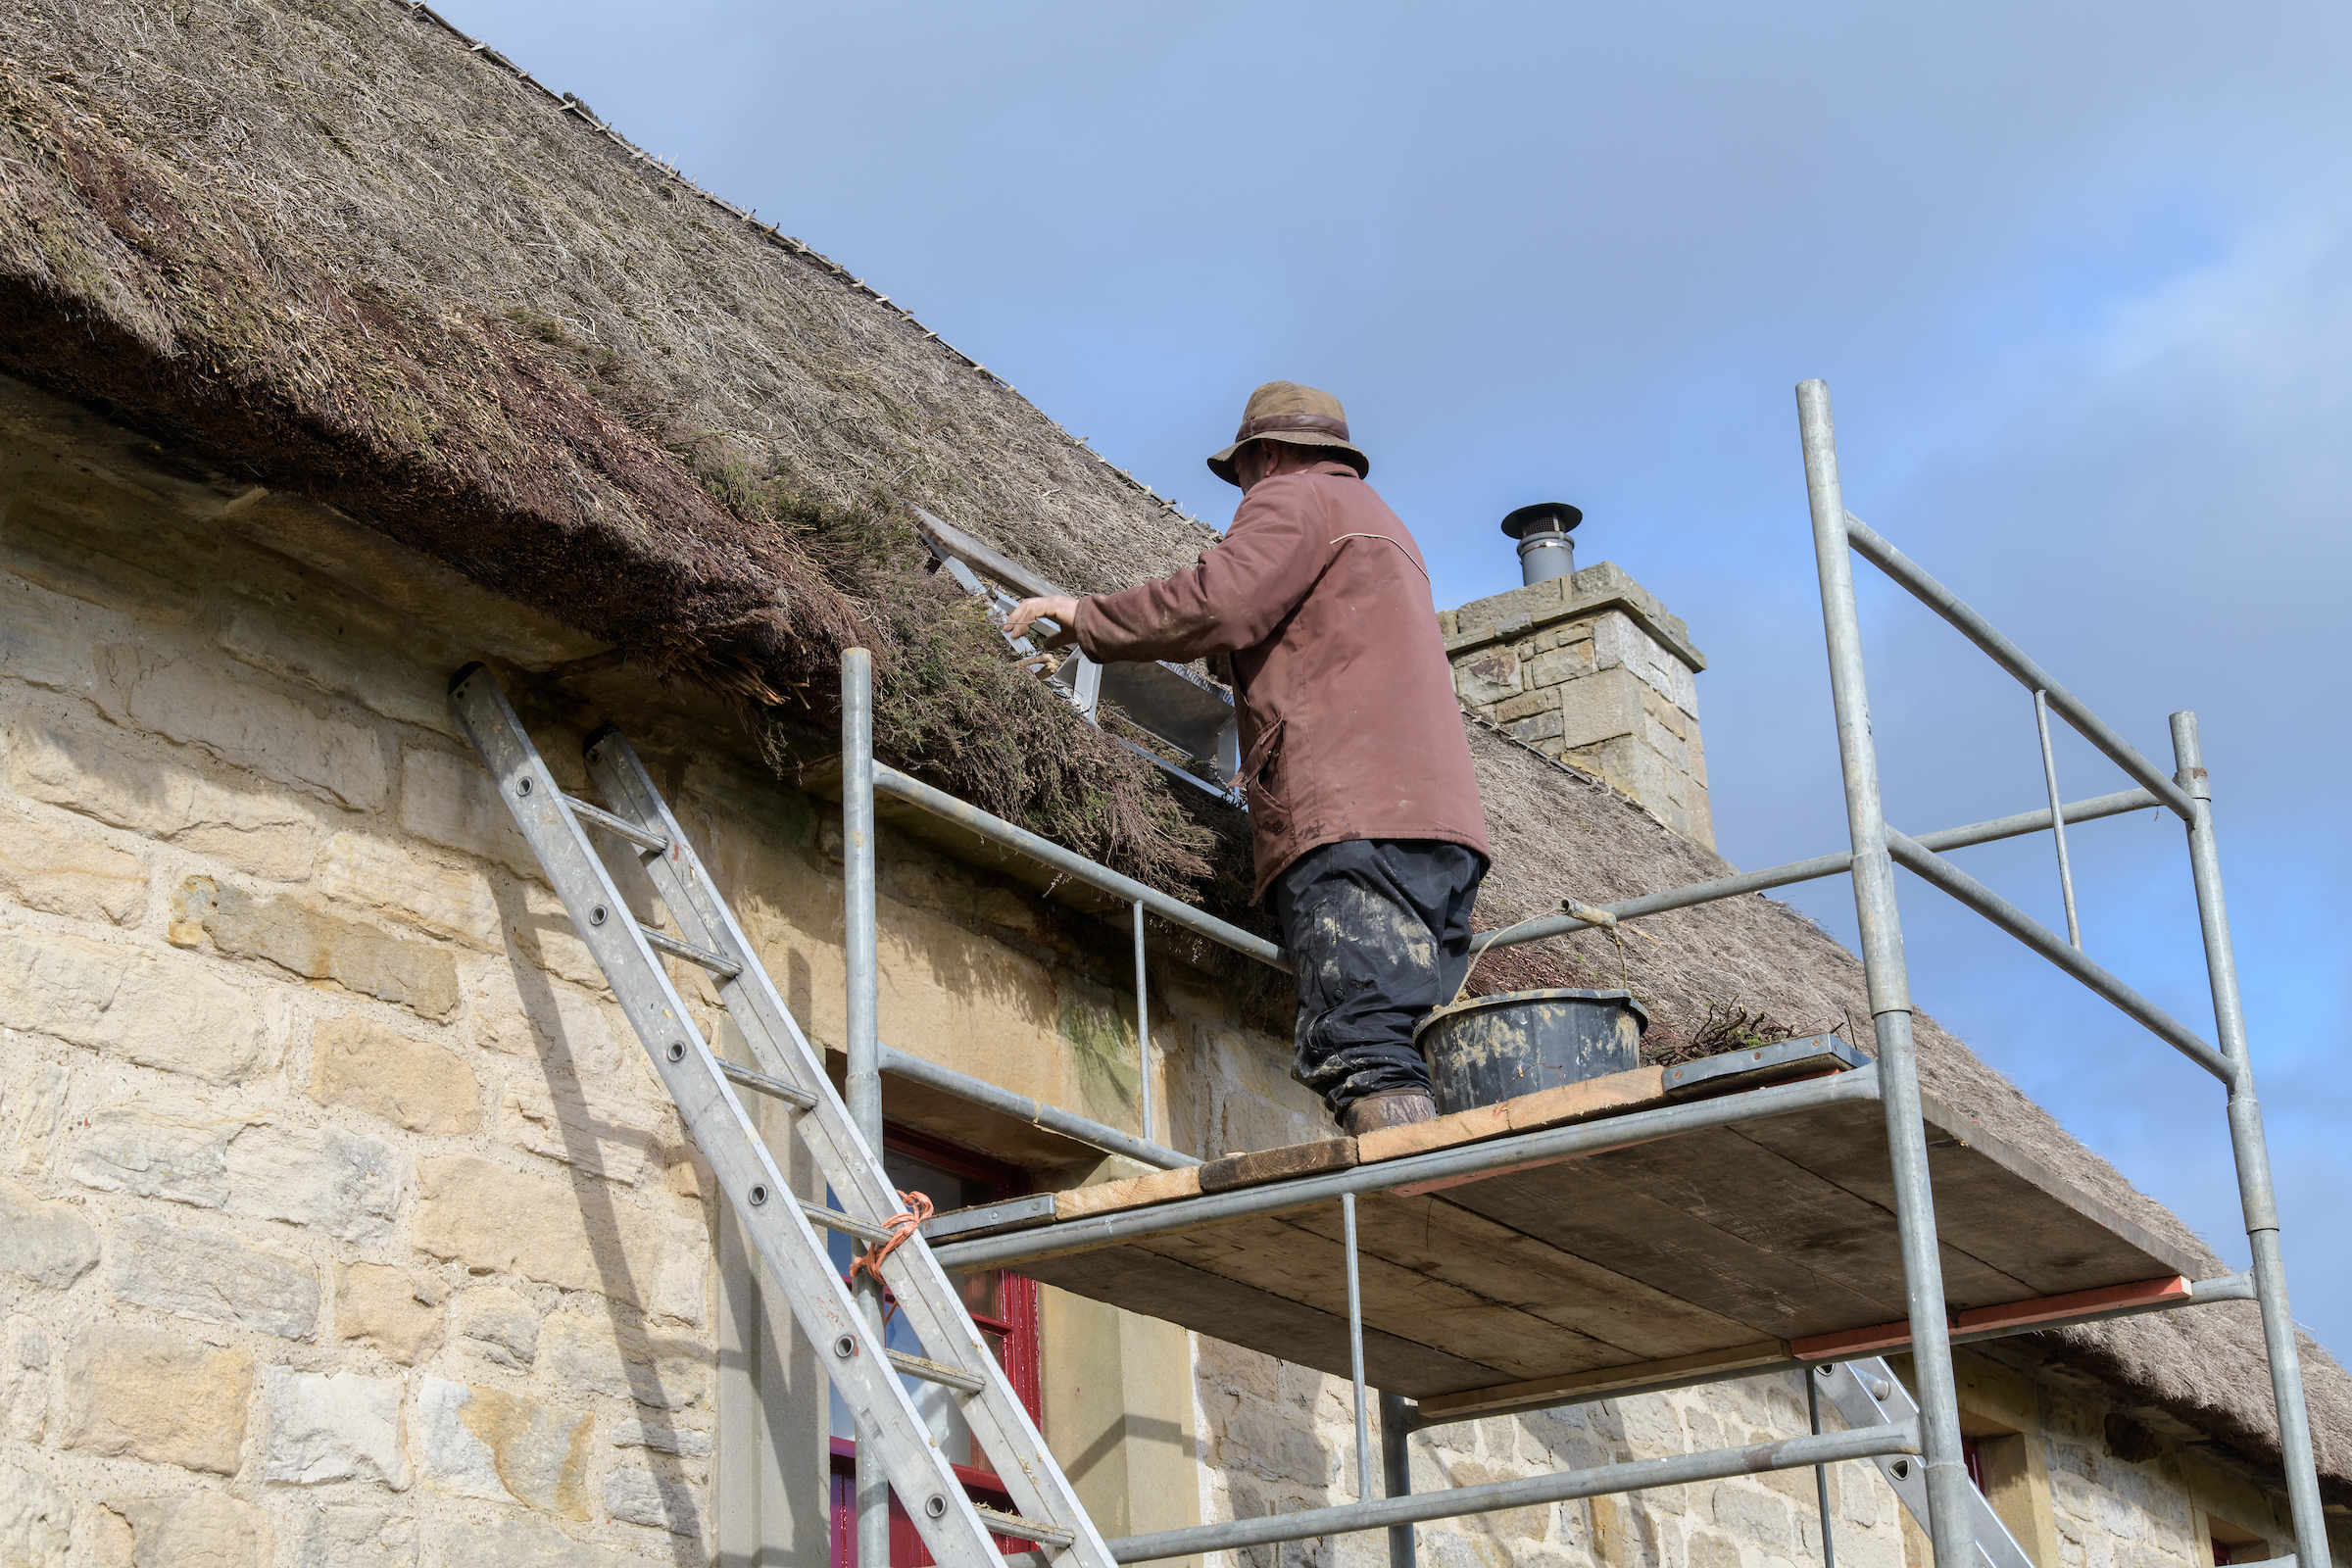 Heather thatching at Causeway House